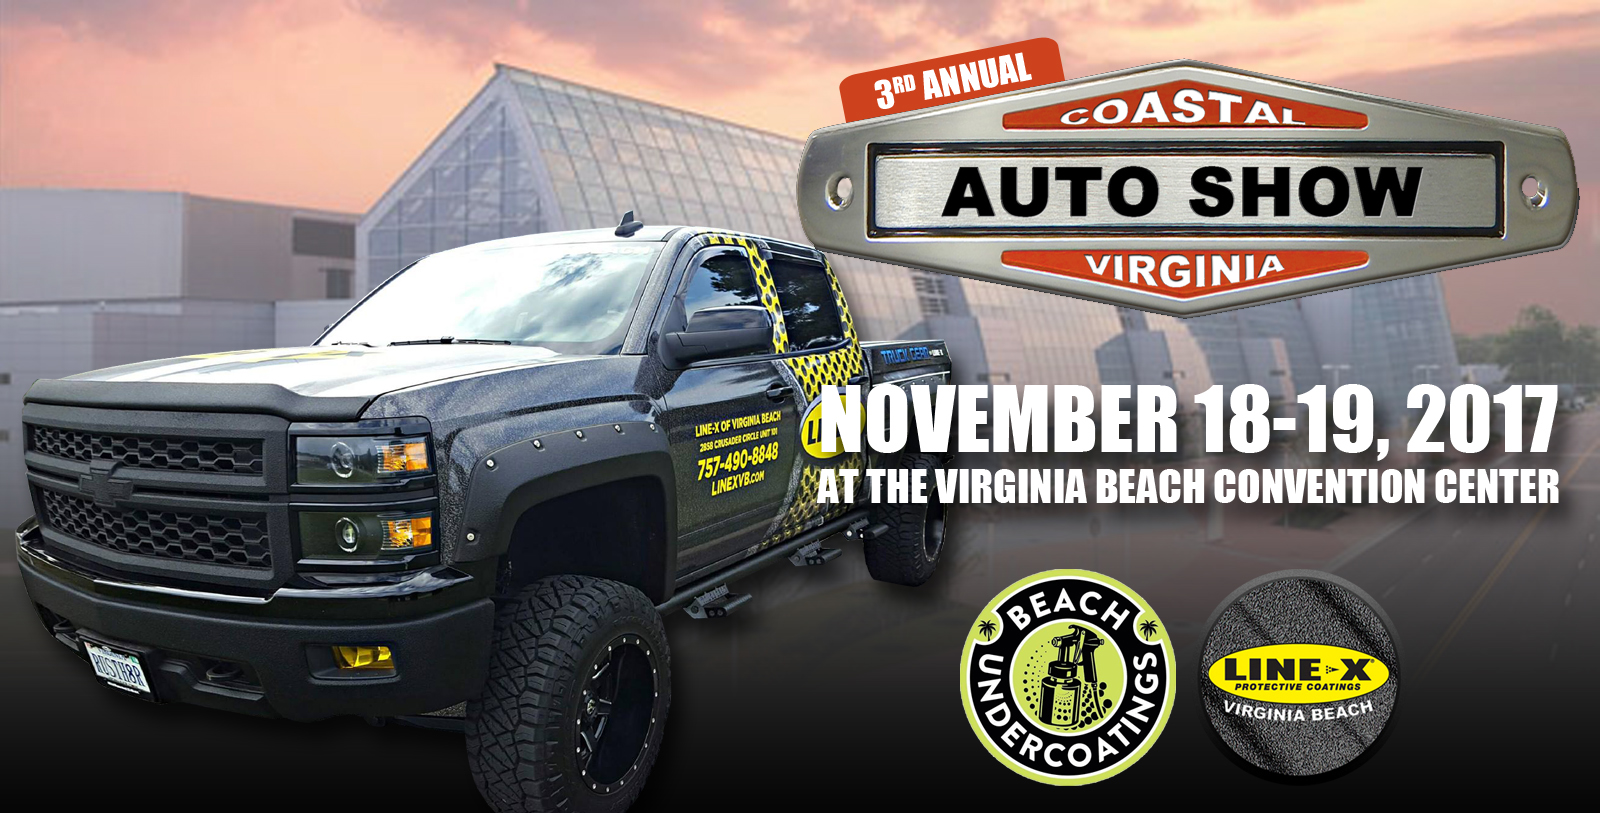 3rd Annual Coastal Virginia Auto Show November 18-19, 2017